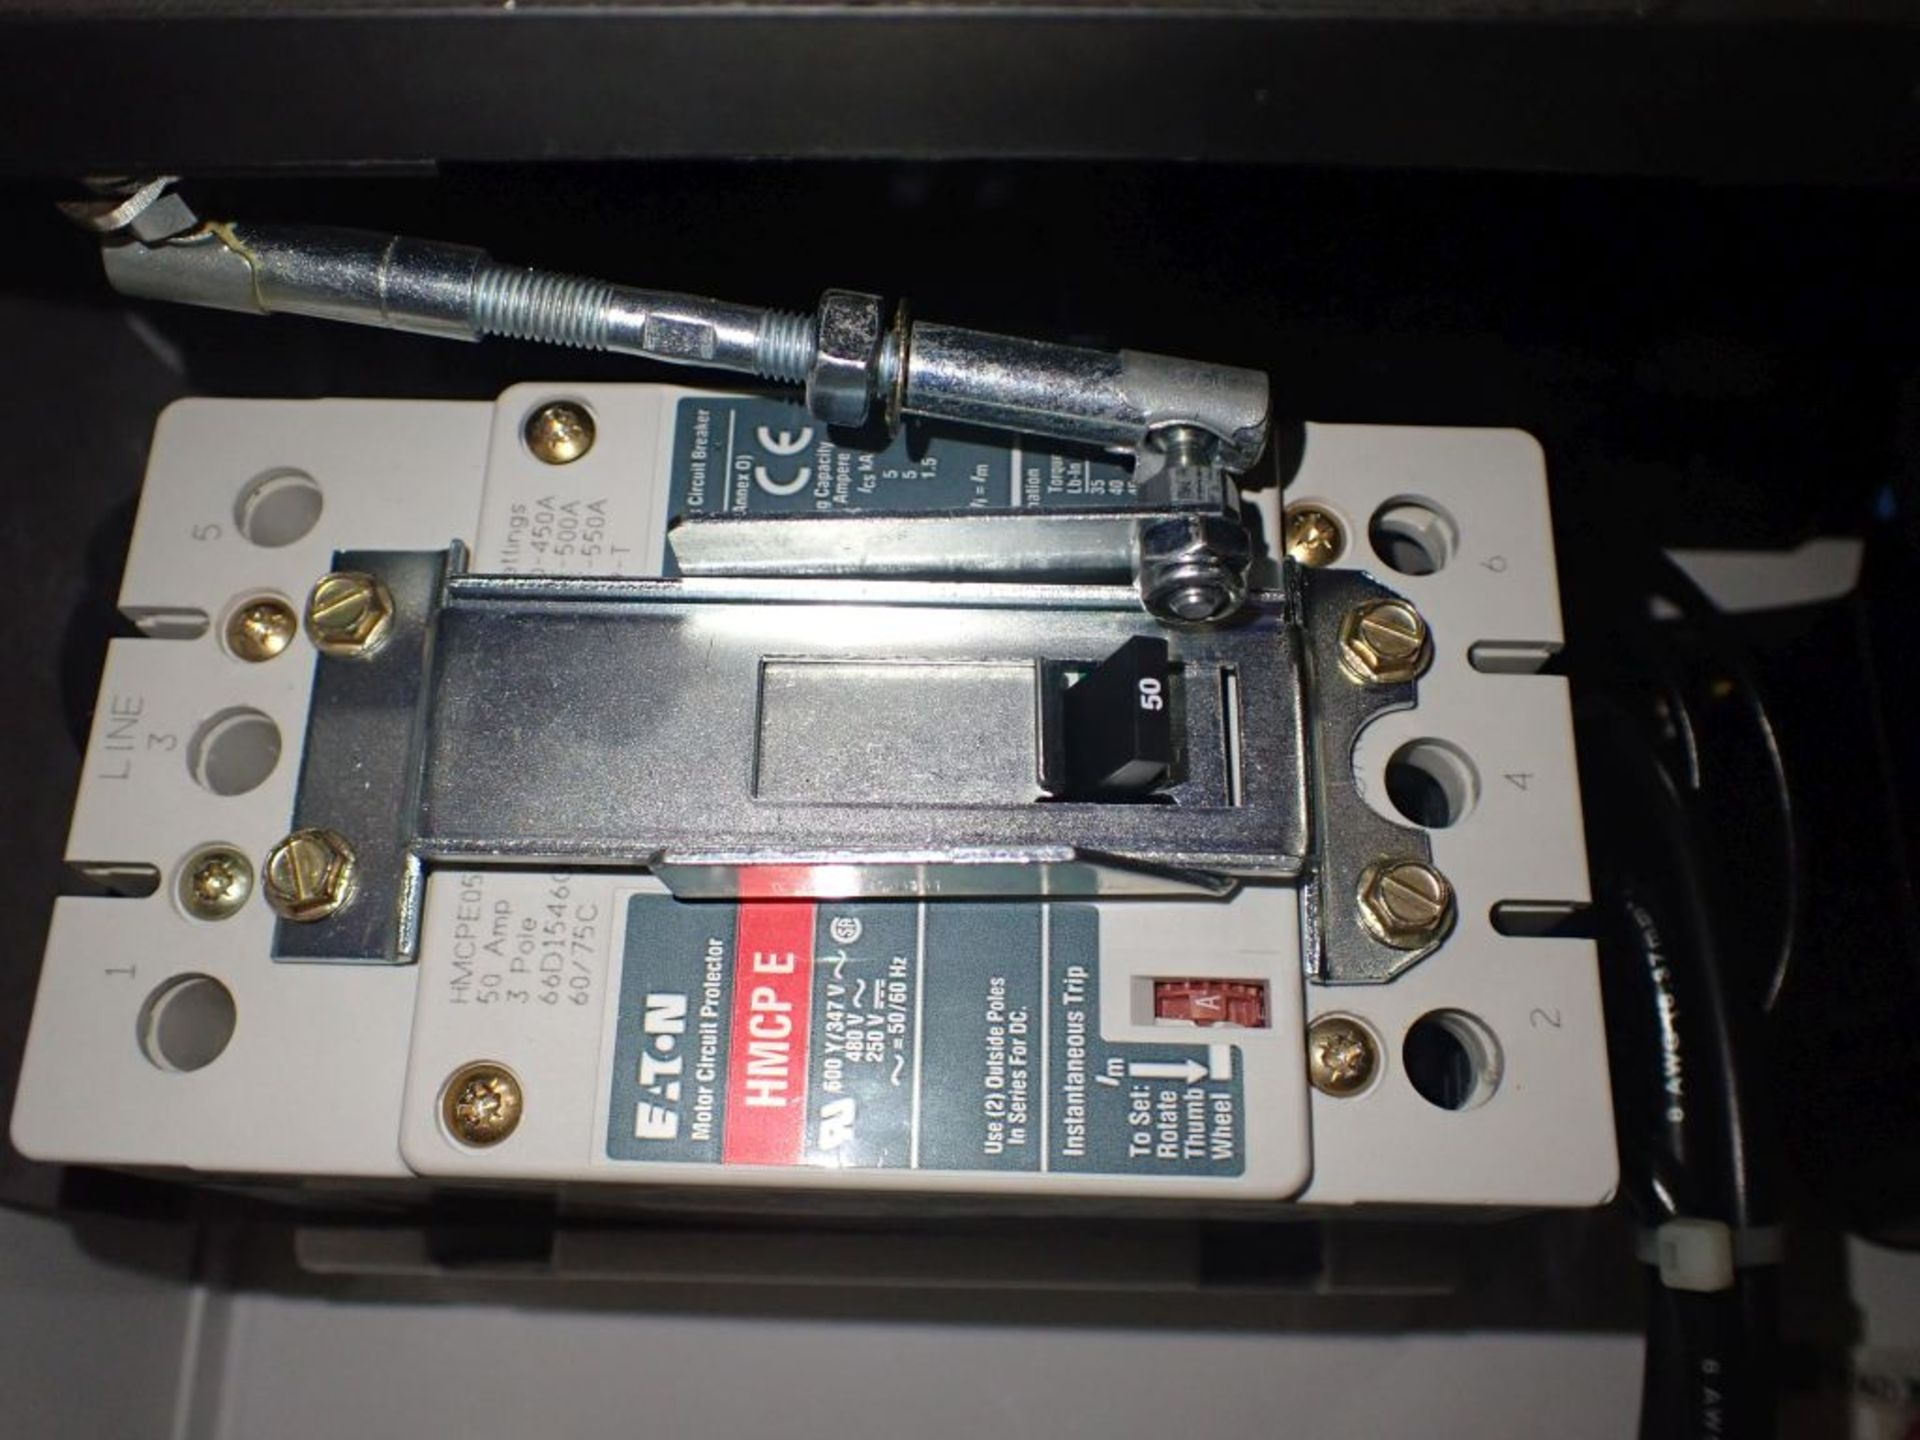 Eaton Freedom 2100 Series Motor Control Center   (2) F206-15A-10HP; (2) SVX900-50A, with Eaton AF - Image 43 of 48